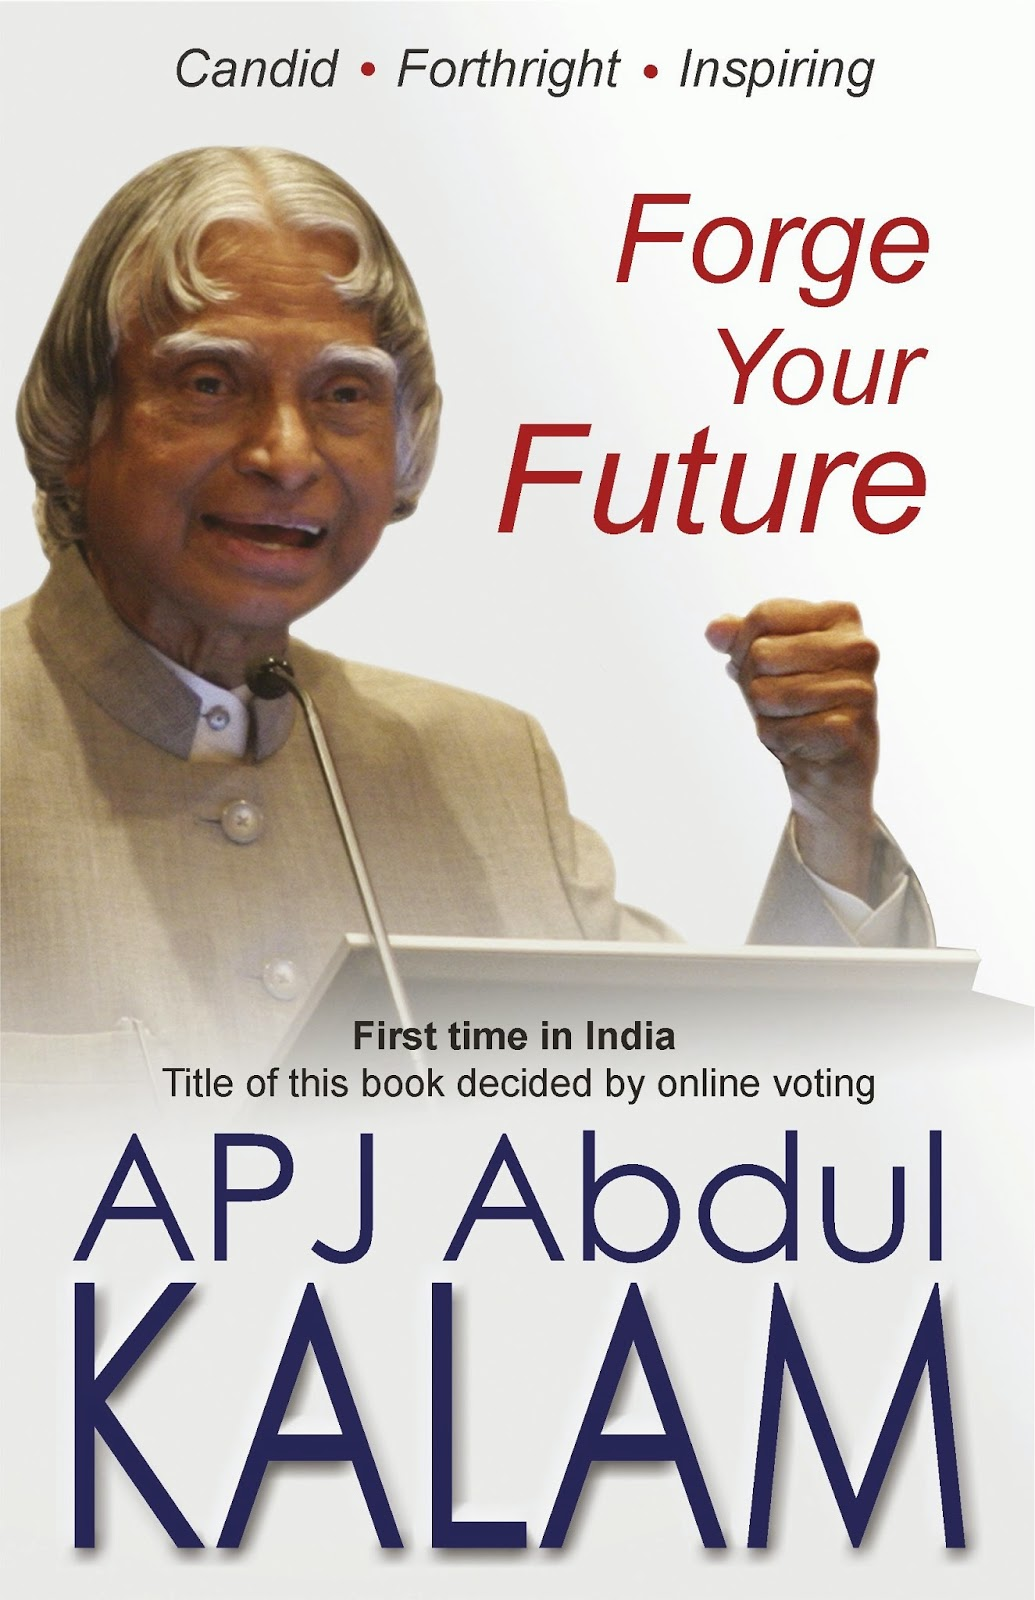 Autobiography of apj abdul kalam in english